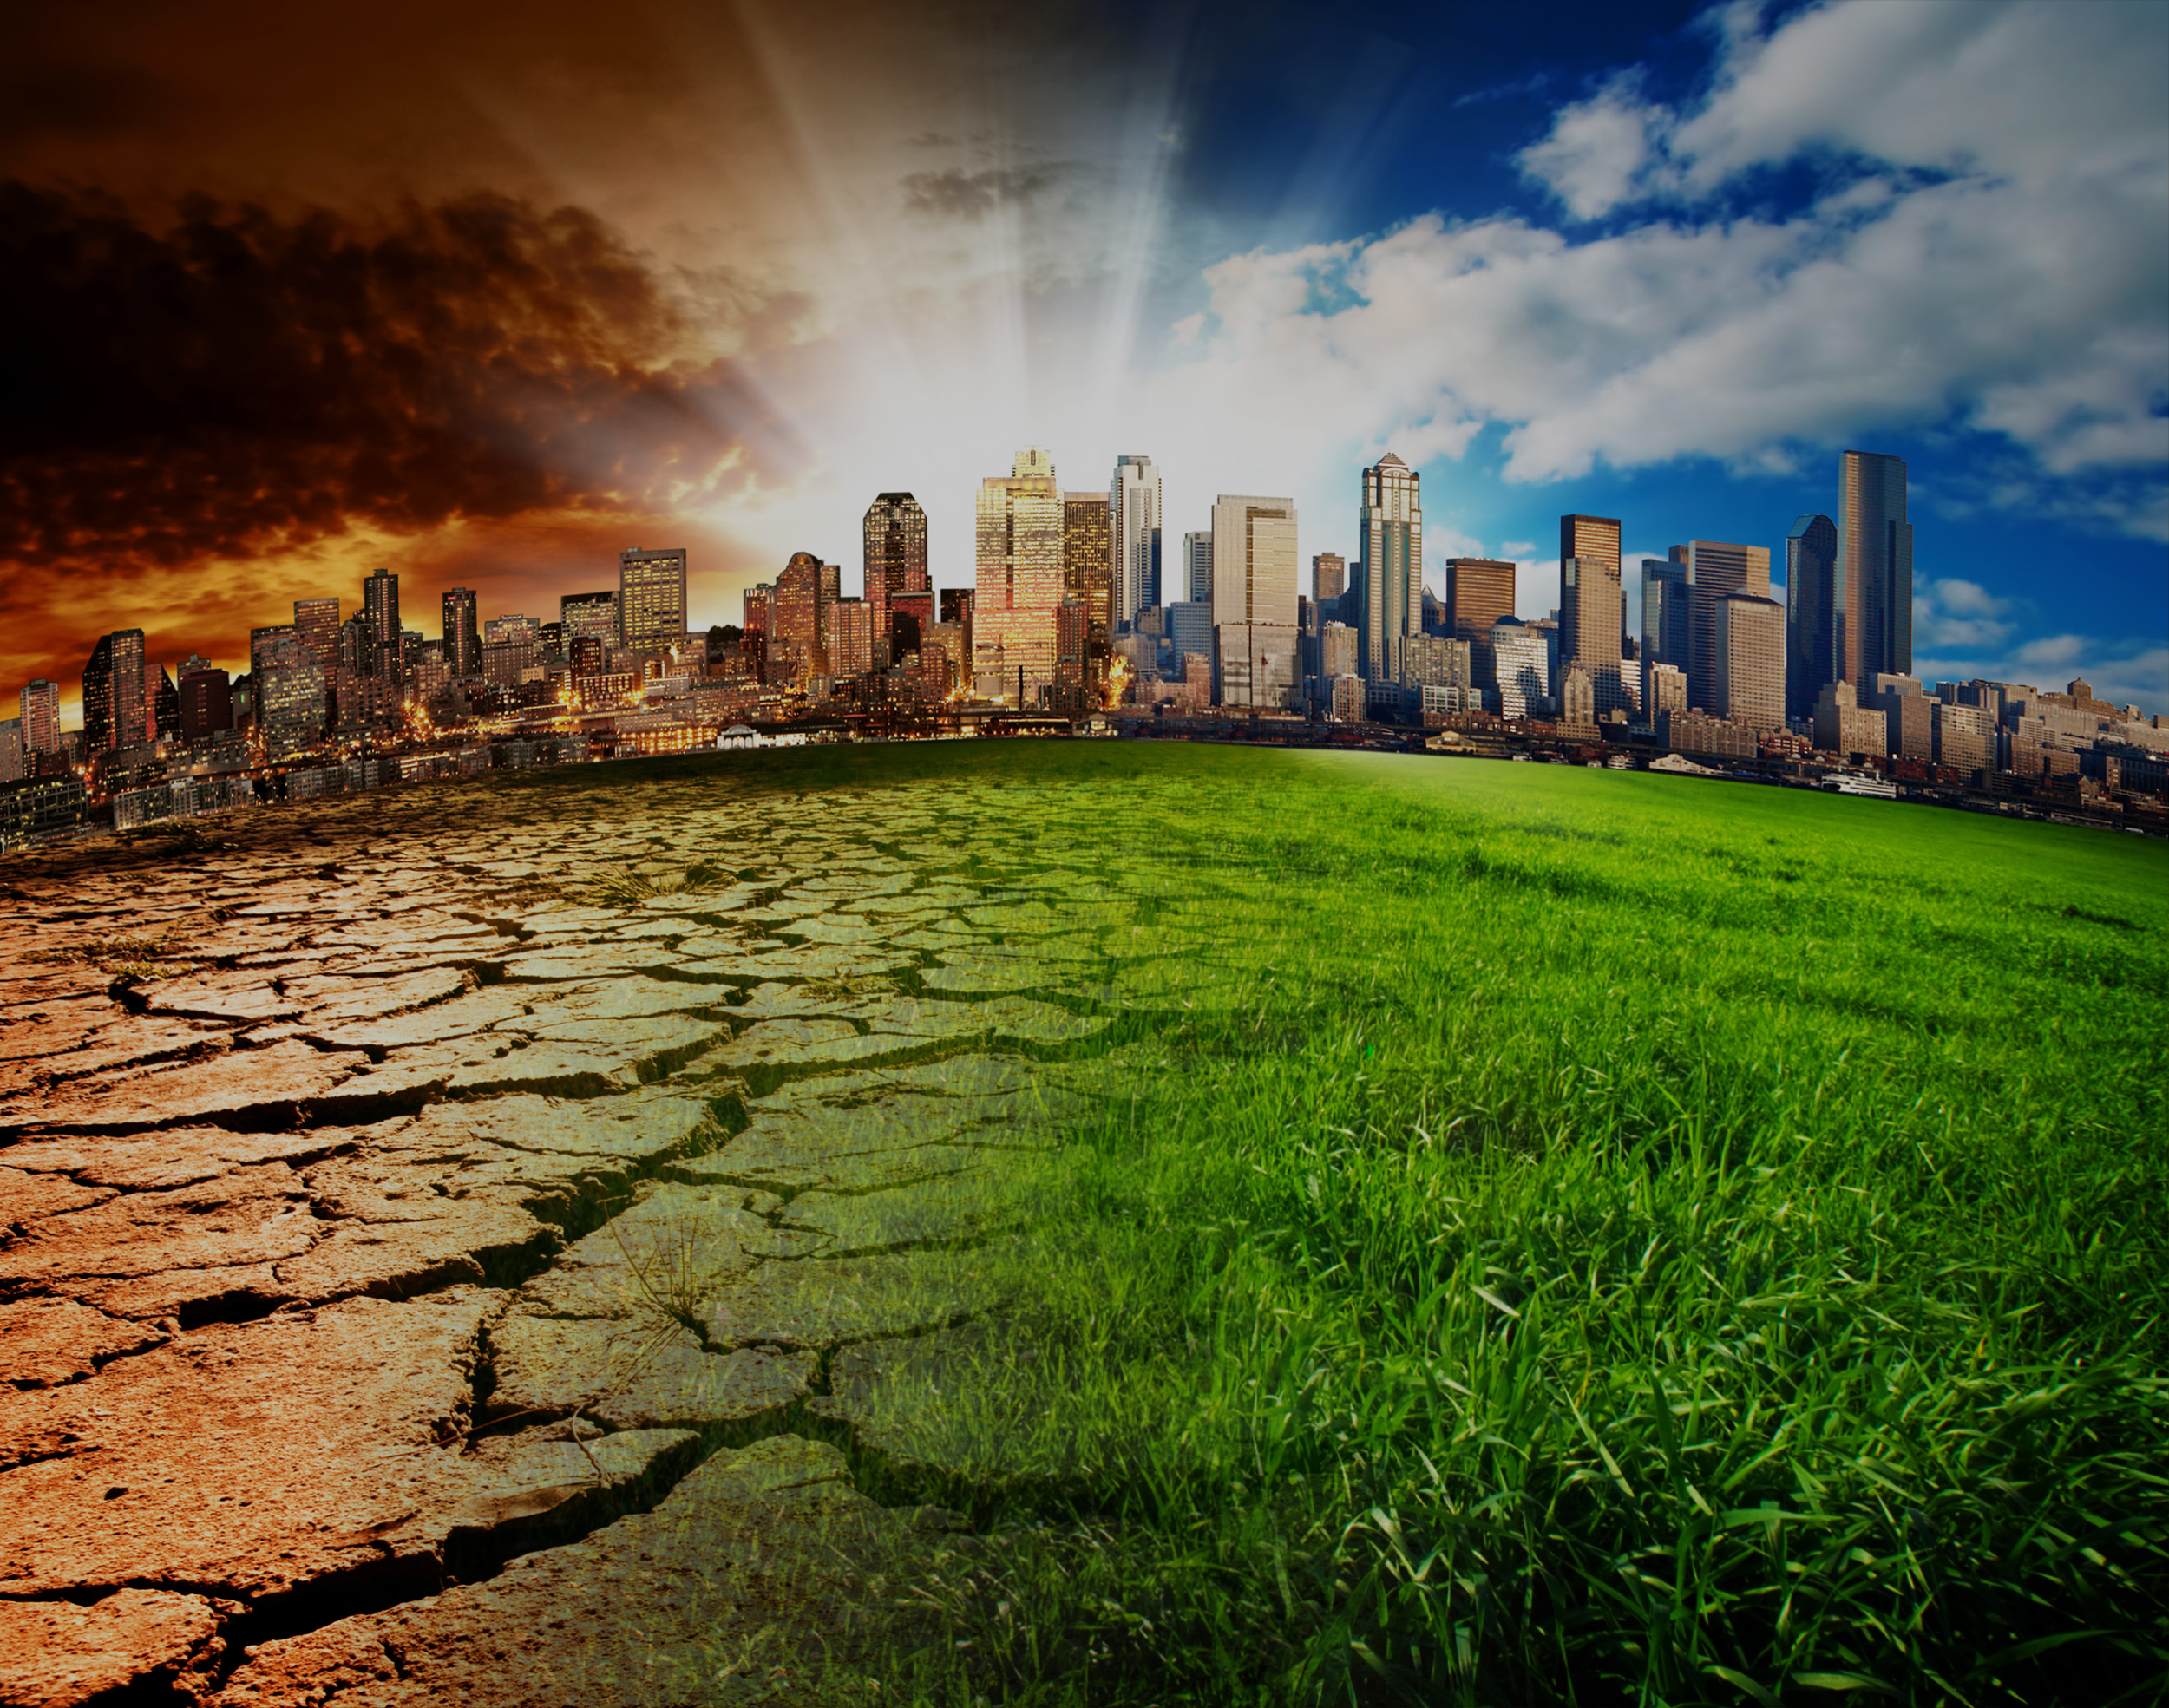 Photo concept of cityscape, half impacted by climate change, the other thriving from climate action